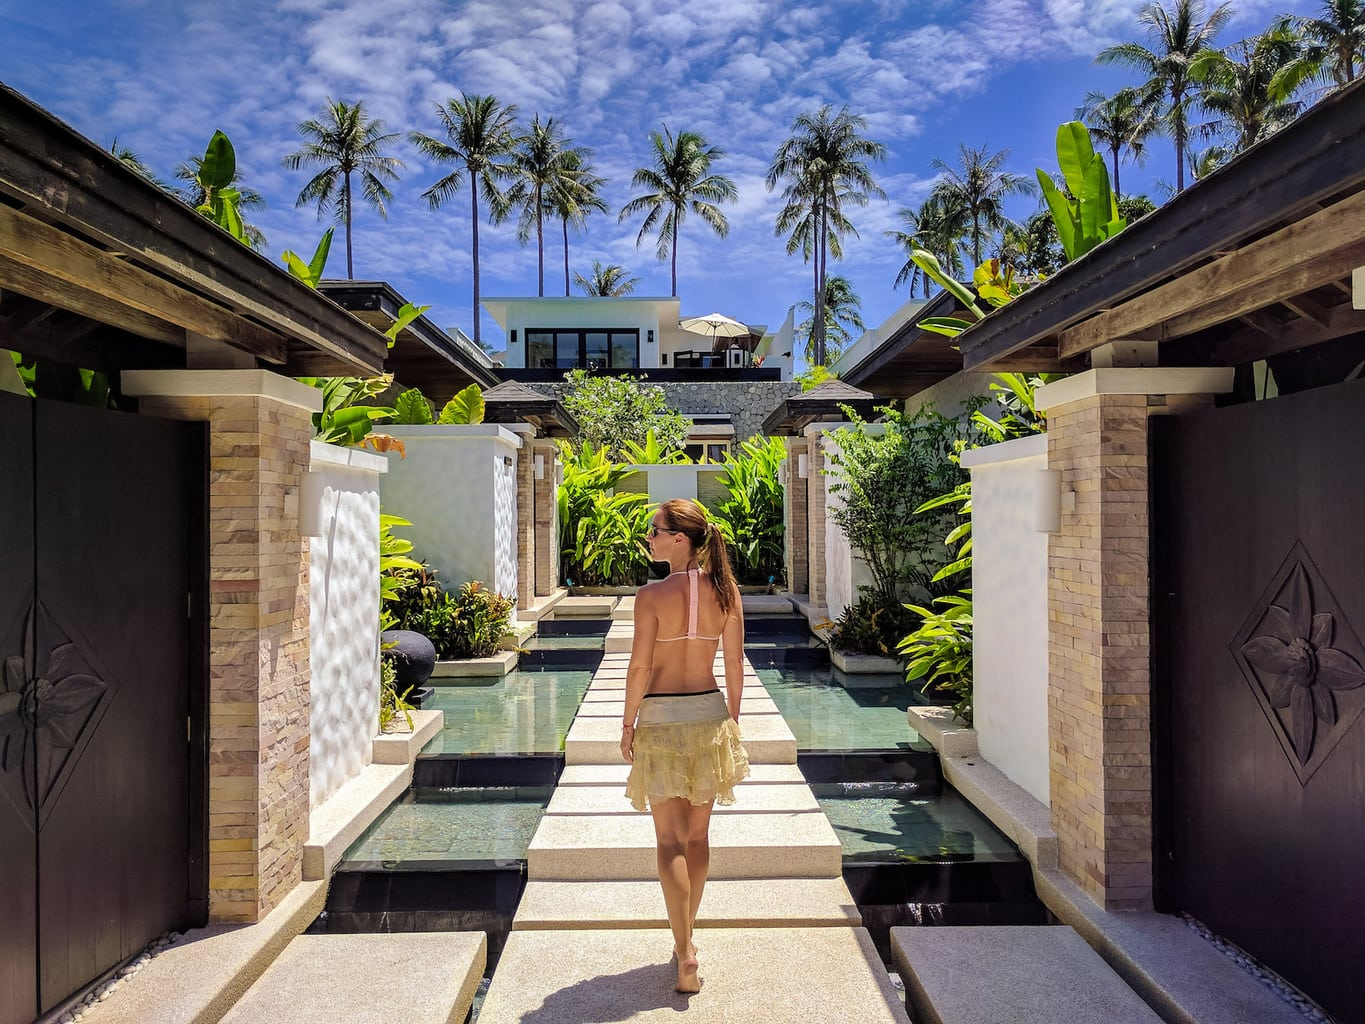 Walking among the luxurious villas